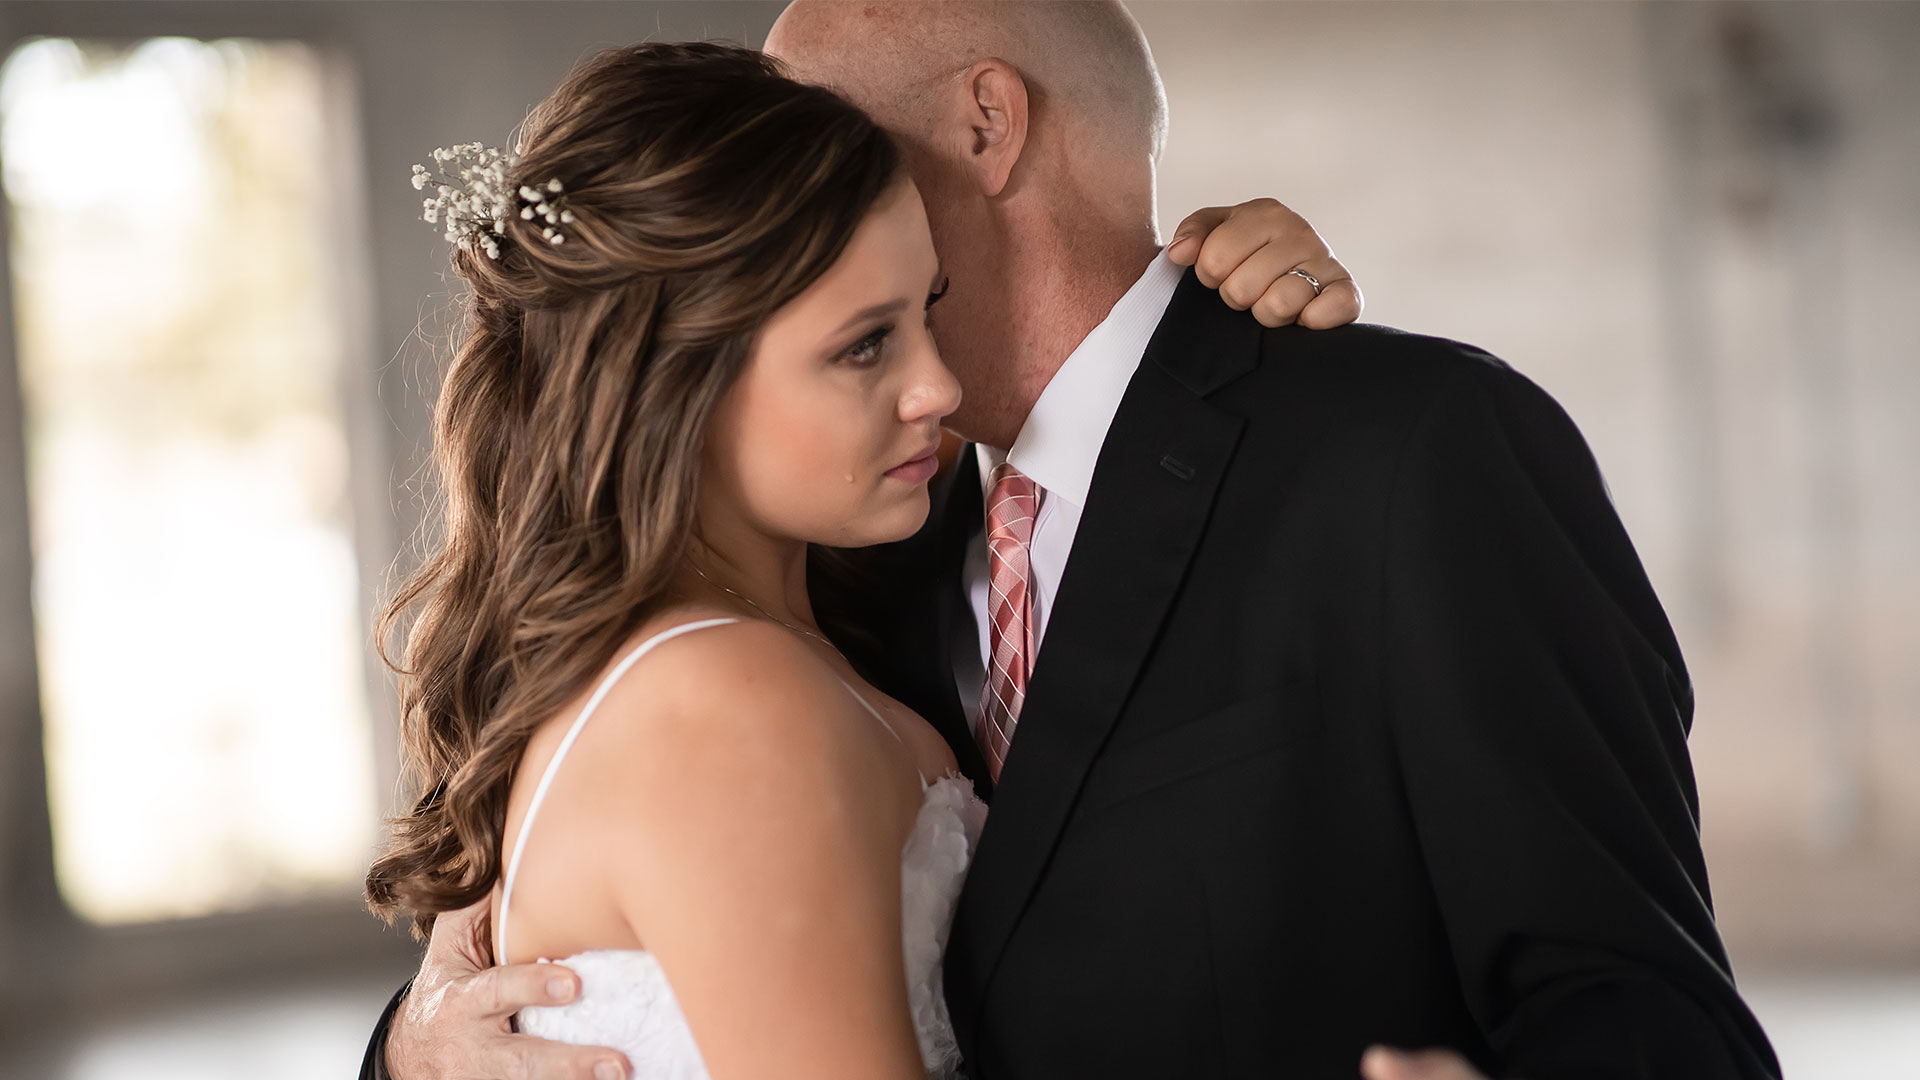 Wedding Dance with Dying Dad